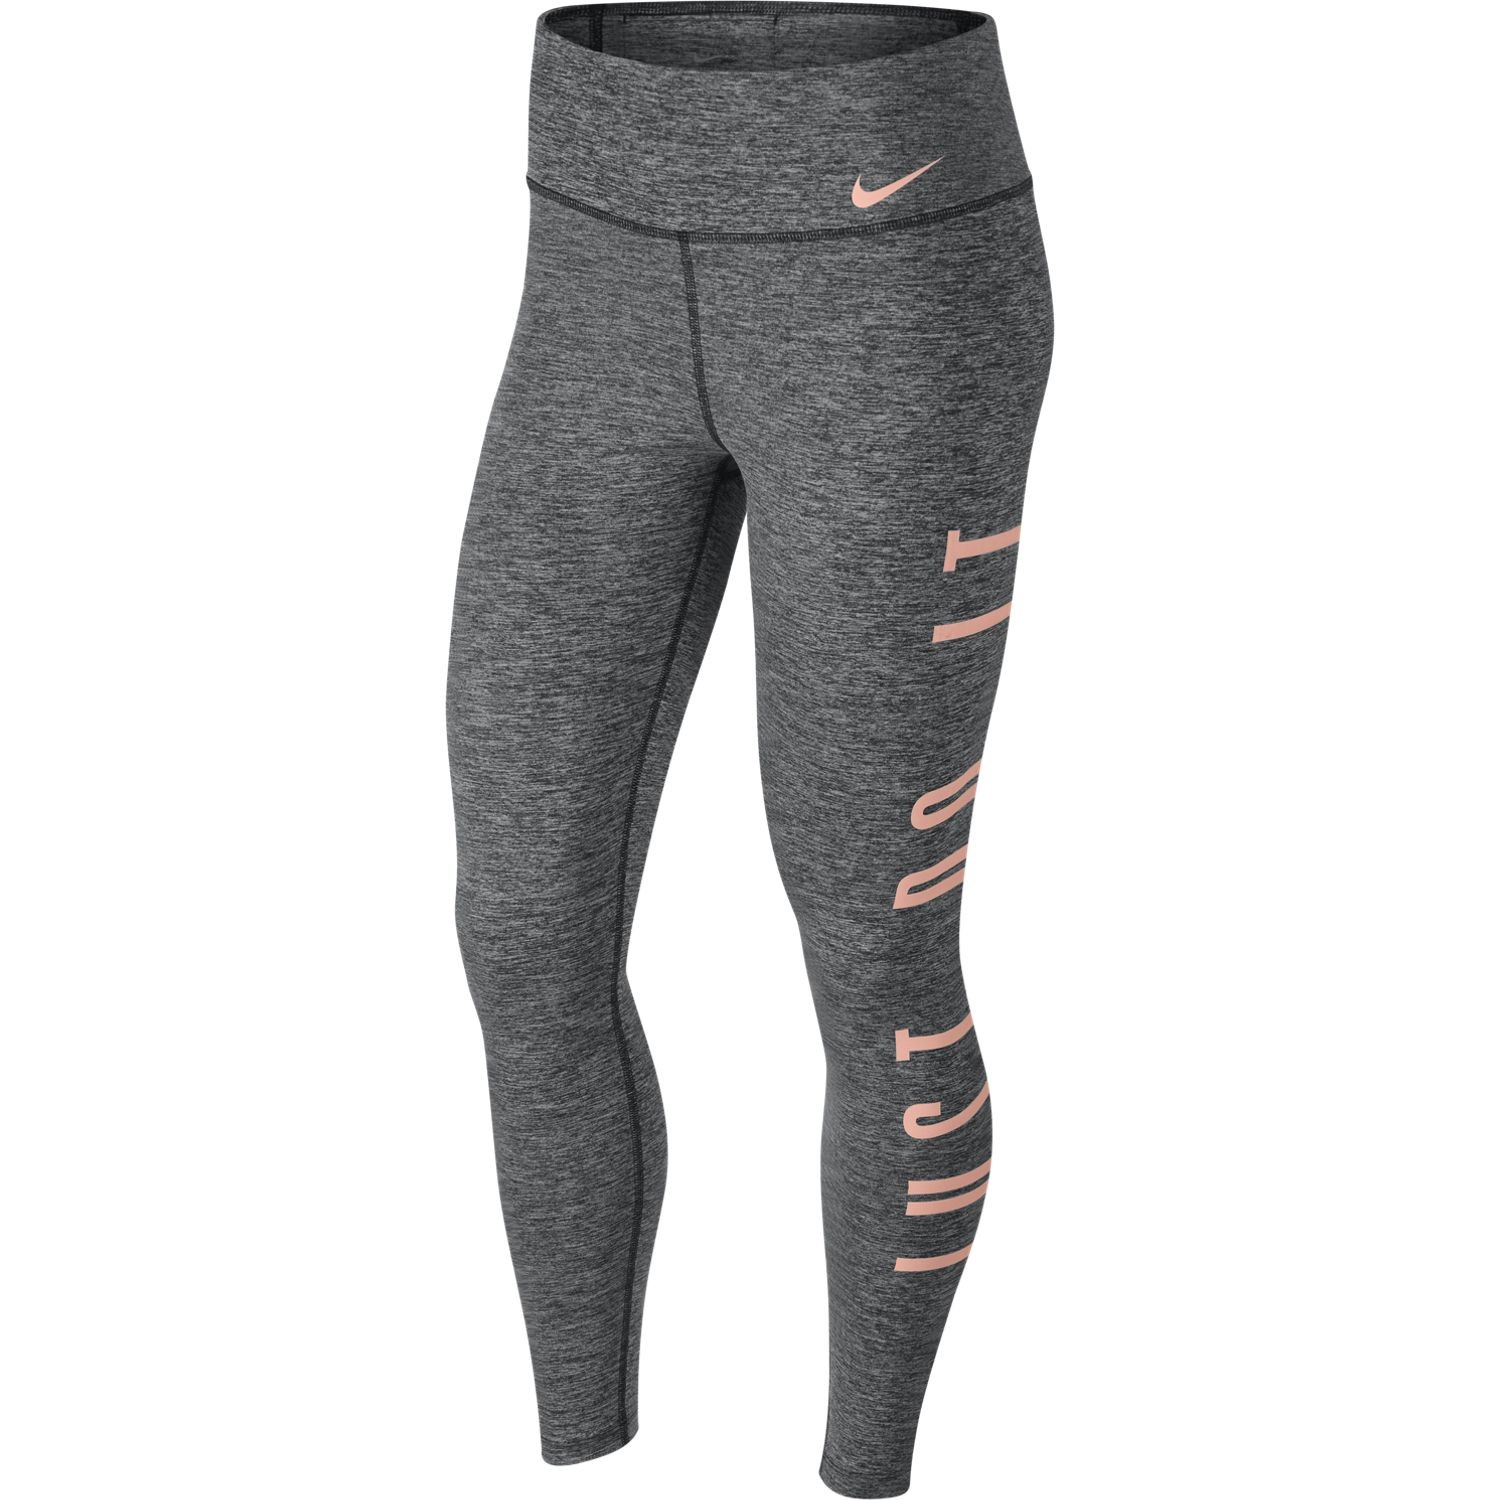 the latest b7091 4a9f9 Nike Mid-Rise Graphic Power Womens Training Tights - Black Heather Storm  Pink